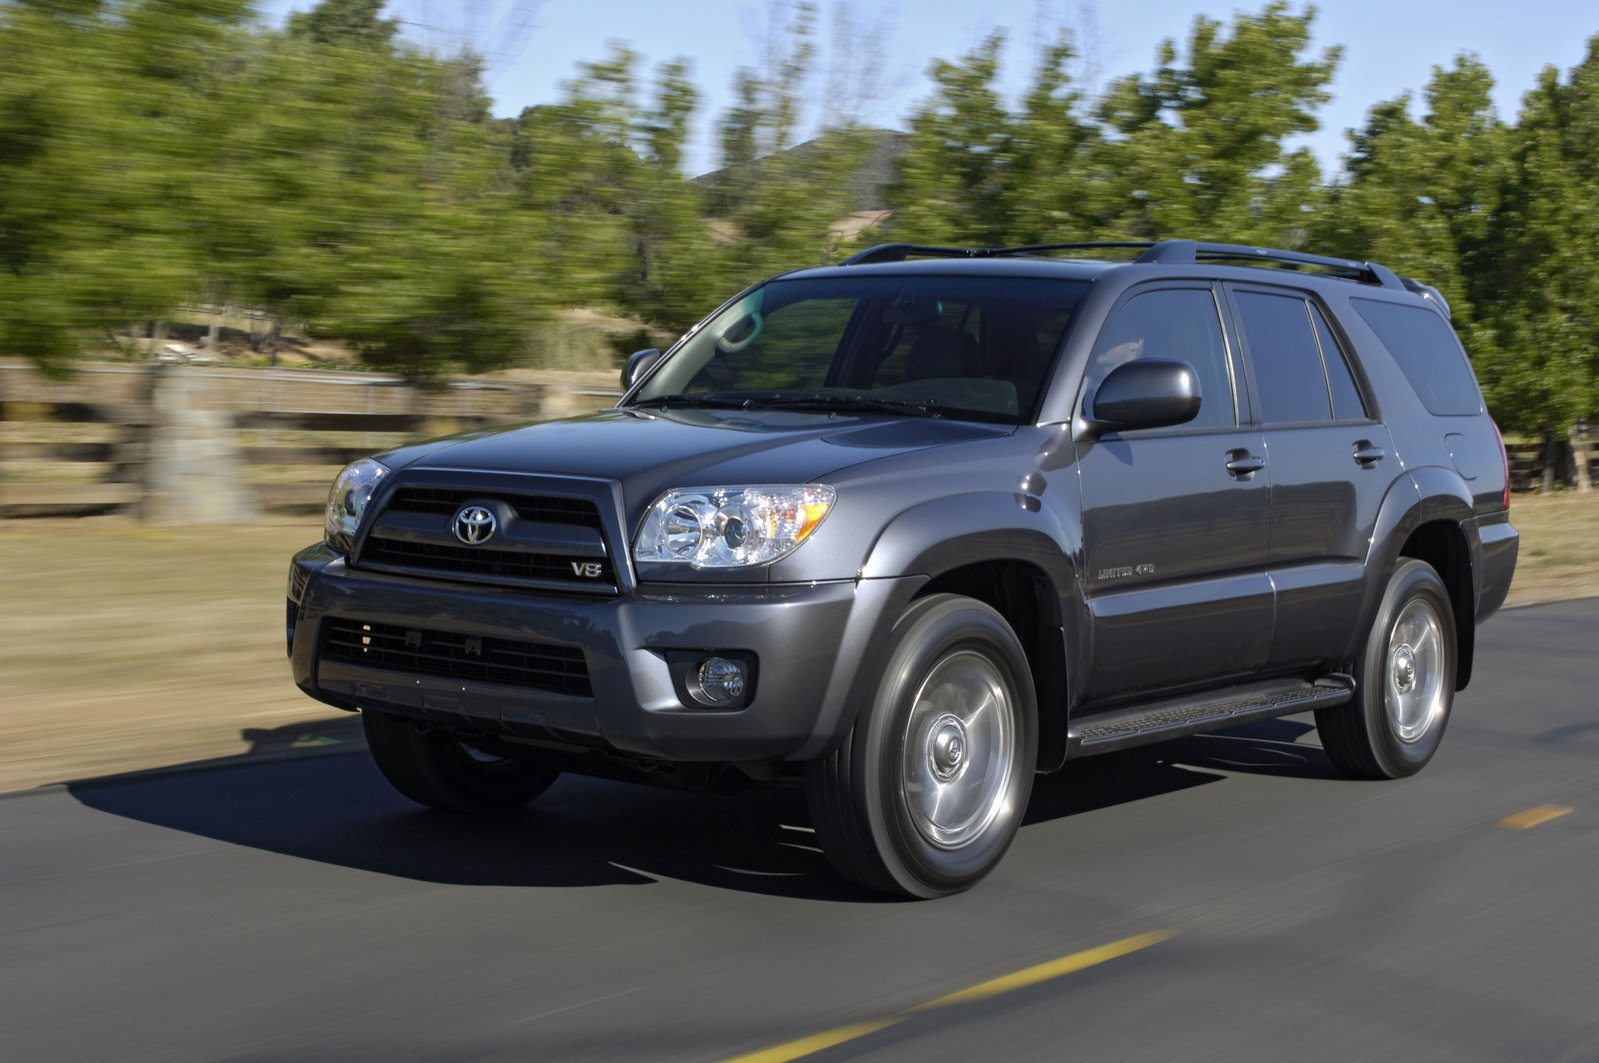 2006 toyota 4runner picture 94362 car review top speed. Black Bedroom Furniture Sets. Home Design Ideas